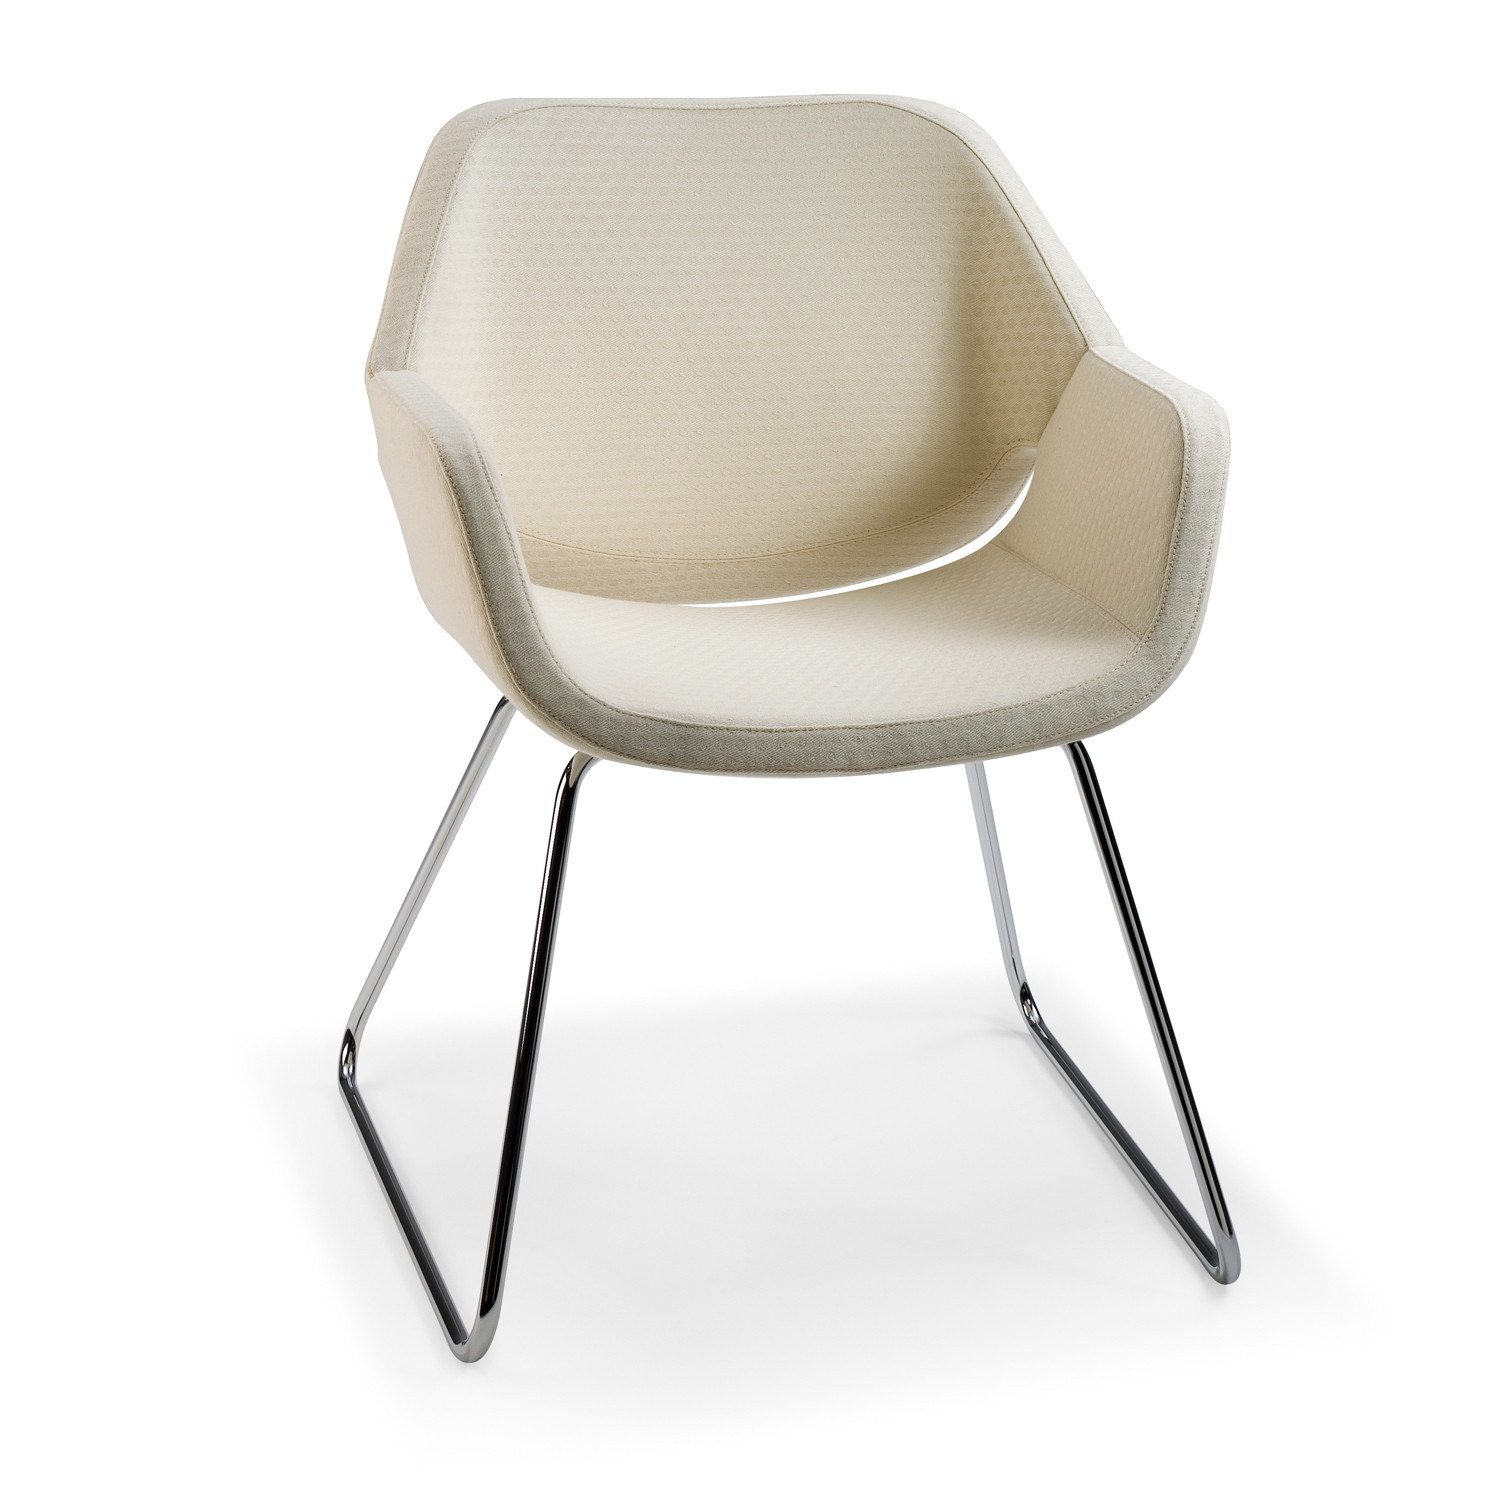 Gap Chair with Sled Base